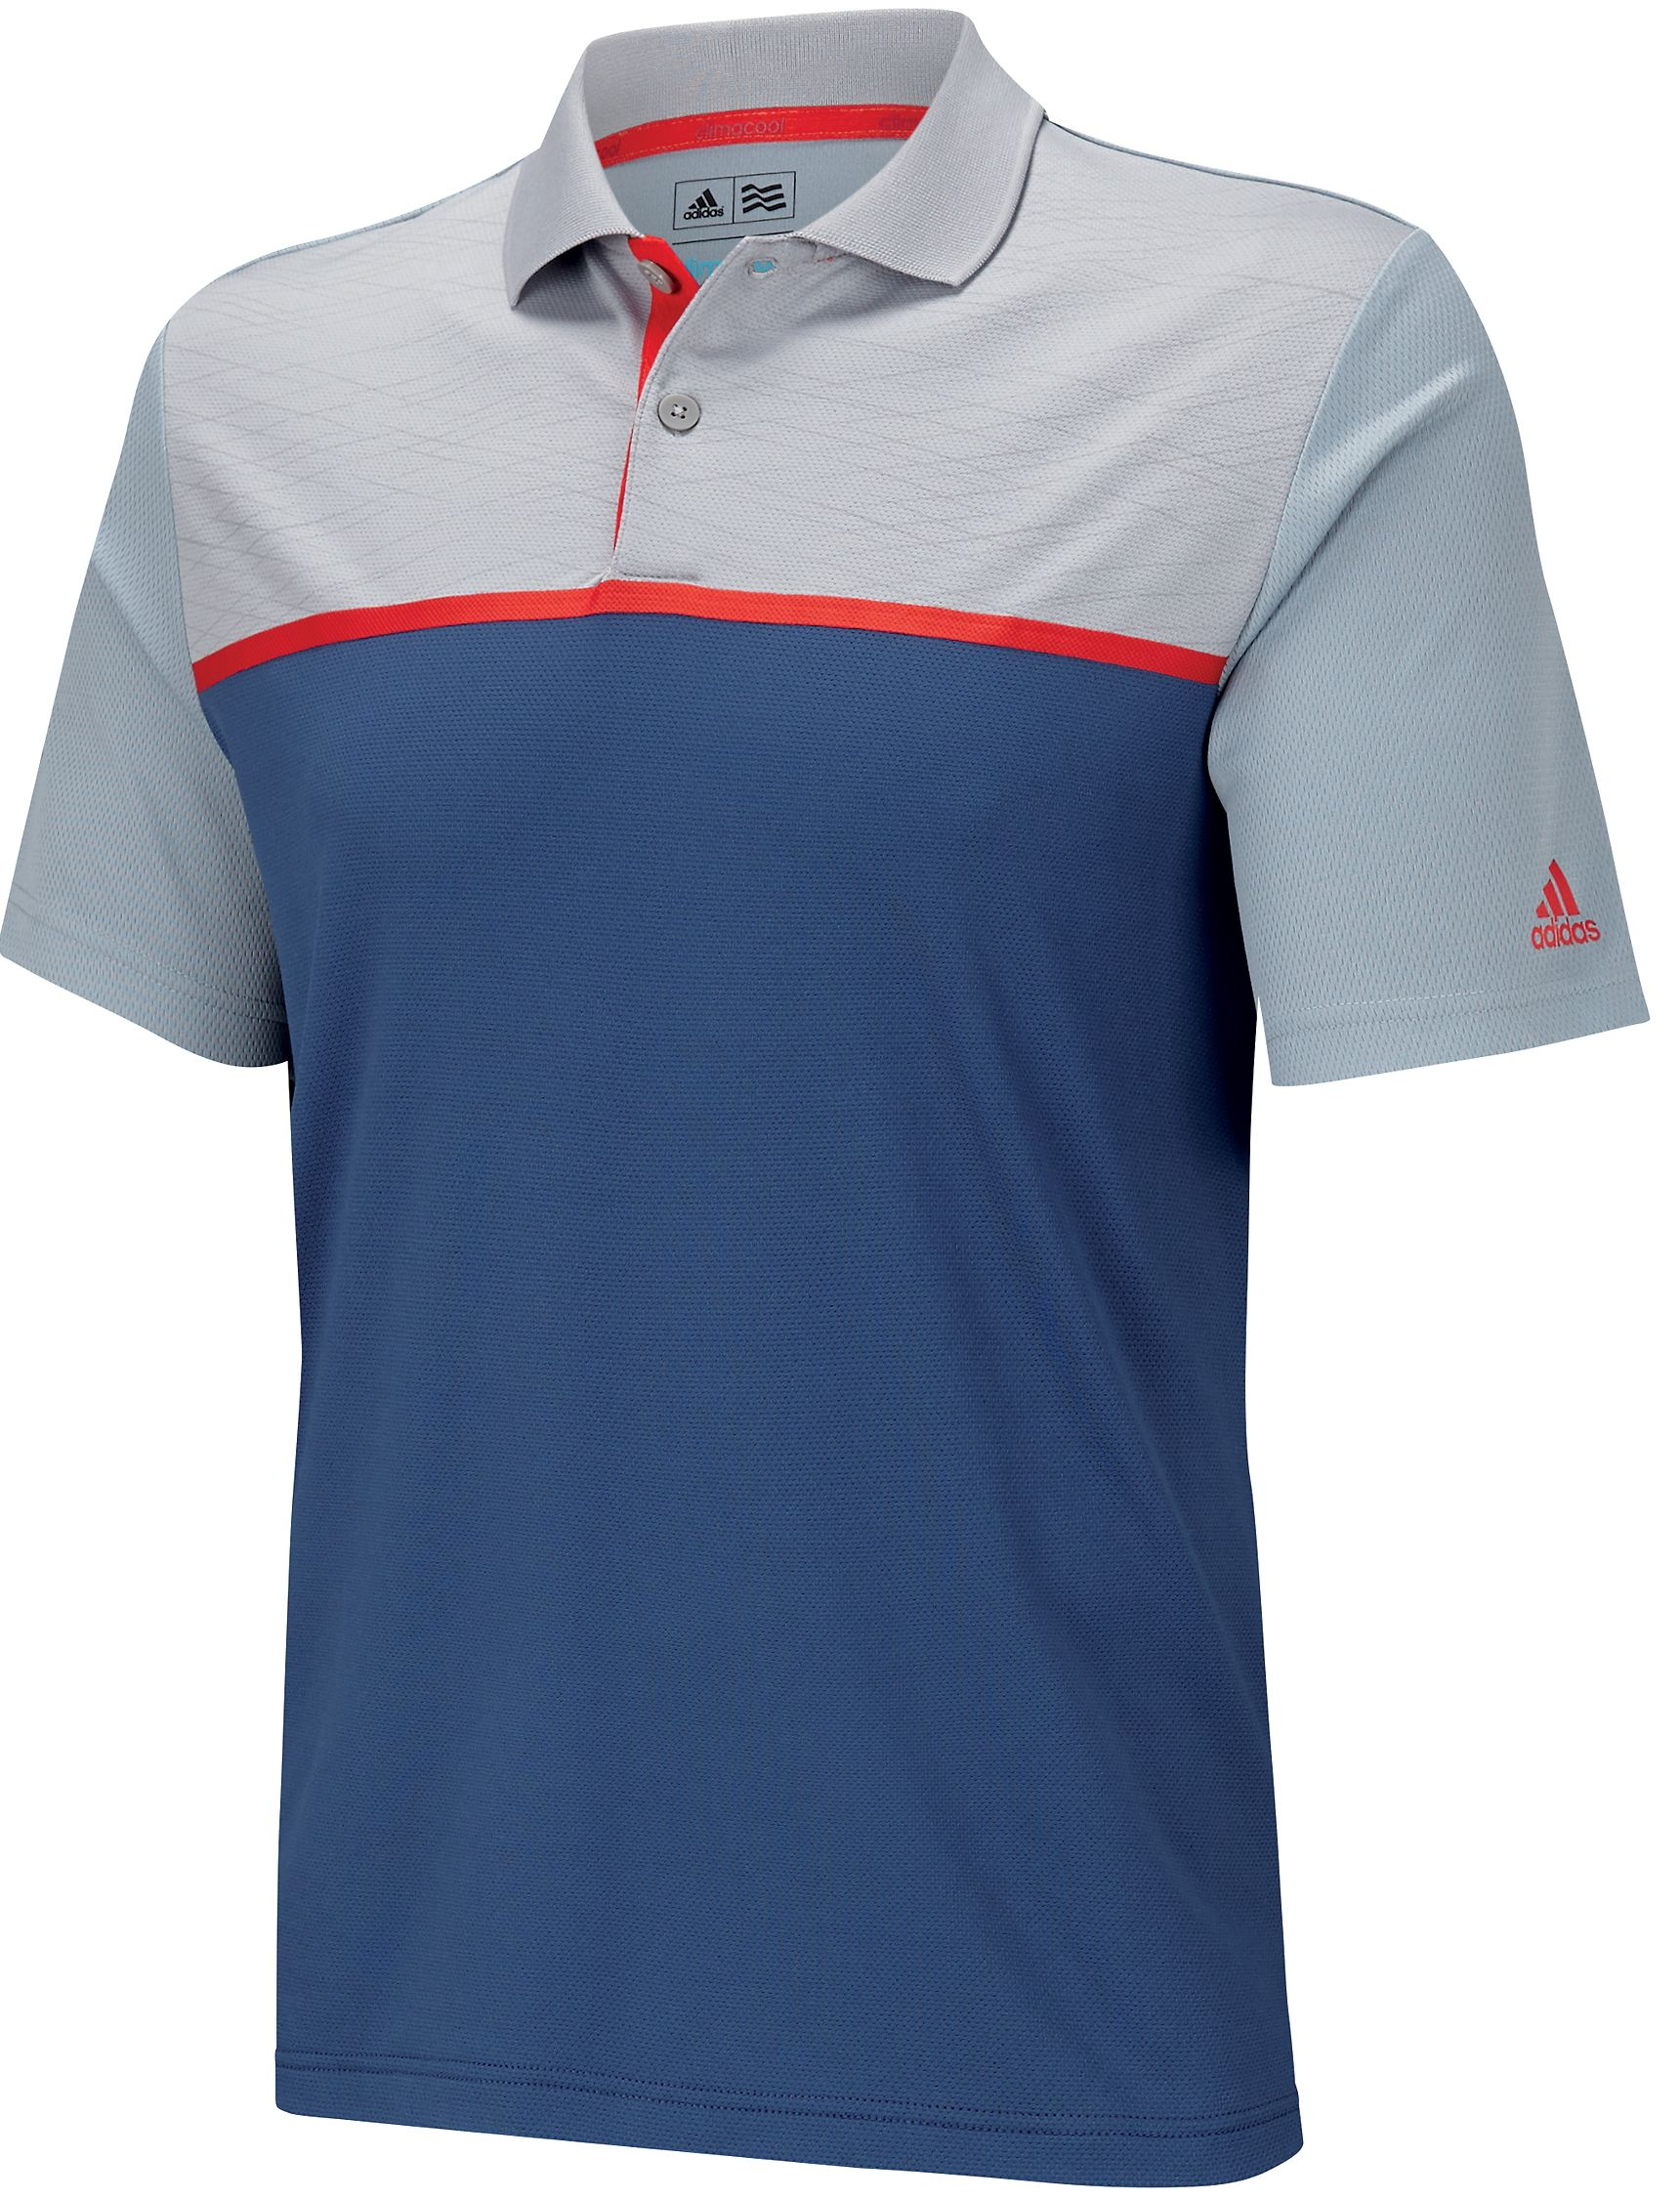 fca22d5a380dd Adidas Golf ClimaCool Energy Colorblock Polo Golf Shirt 2015 Closeouts Mens